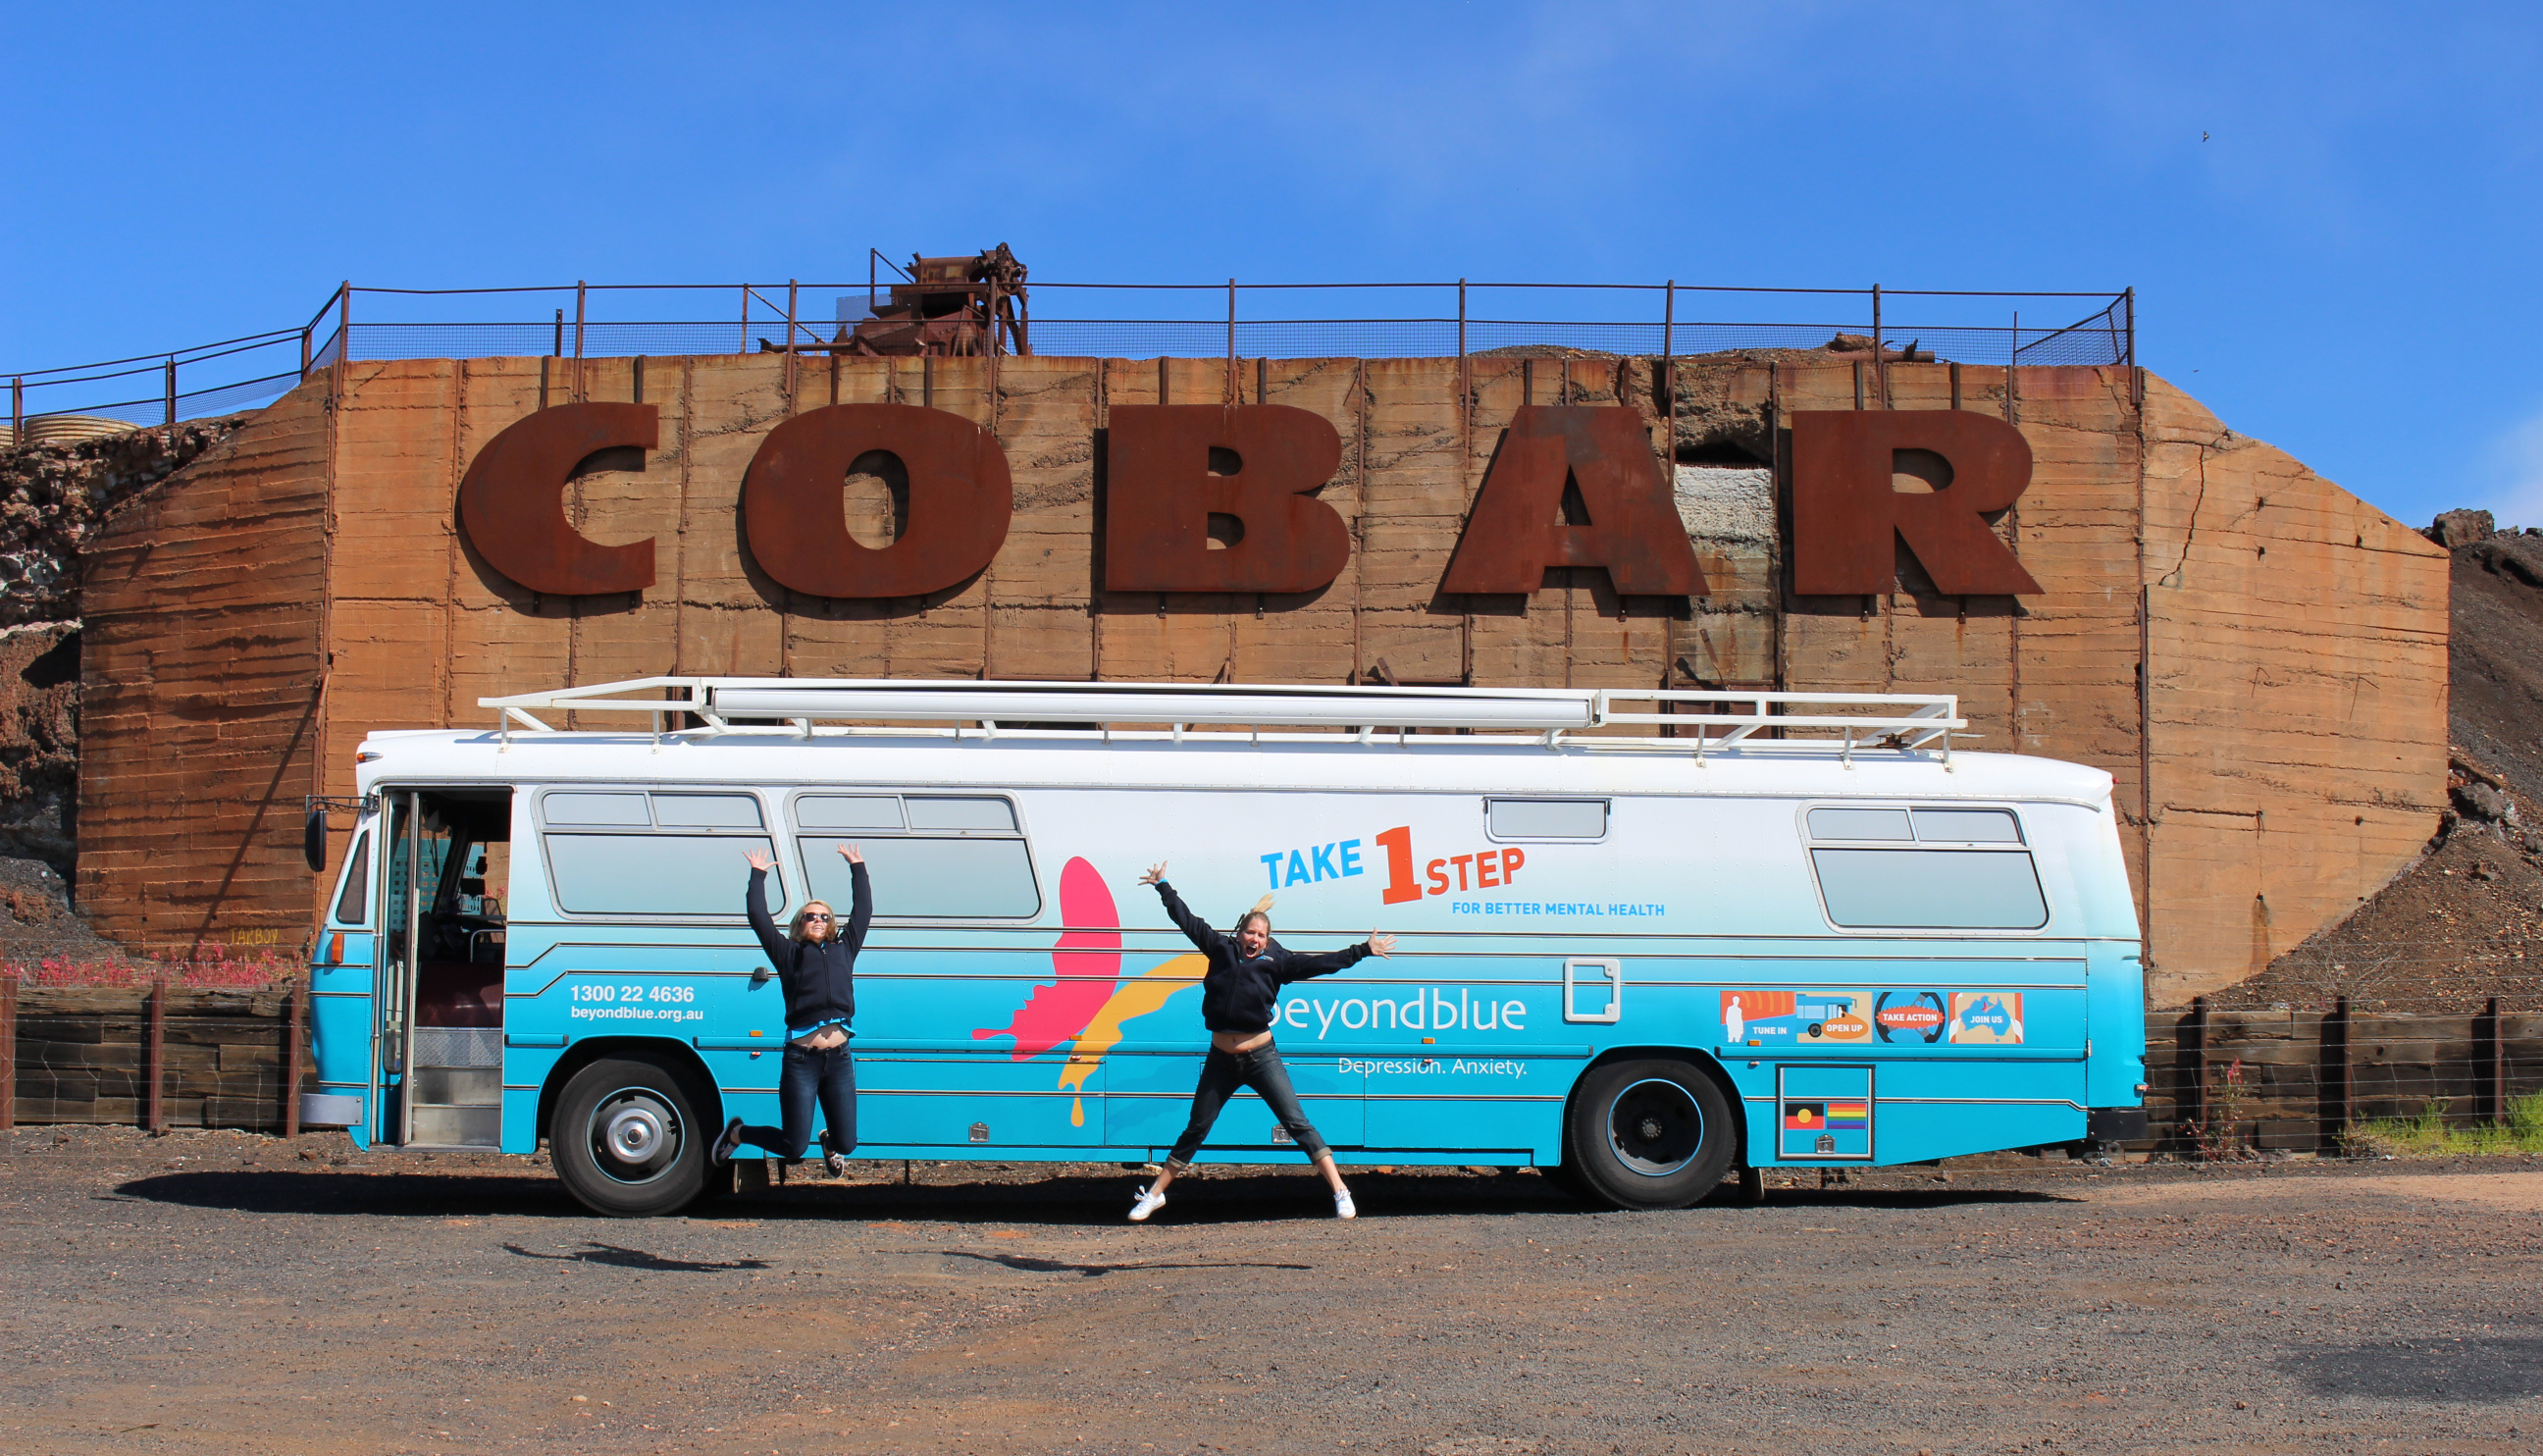 Excited to arrive in Cobar: NSW.